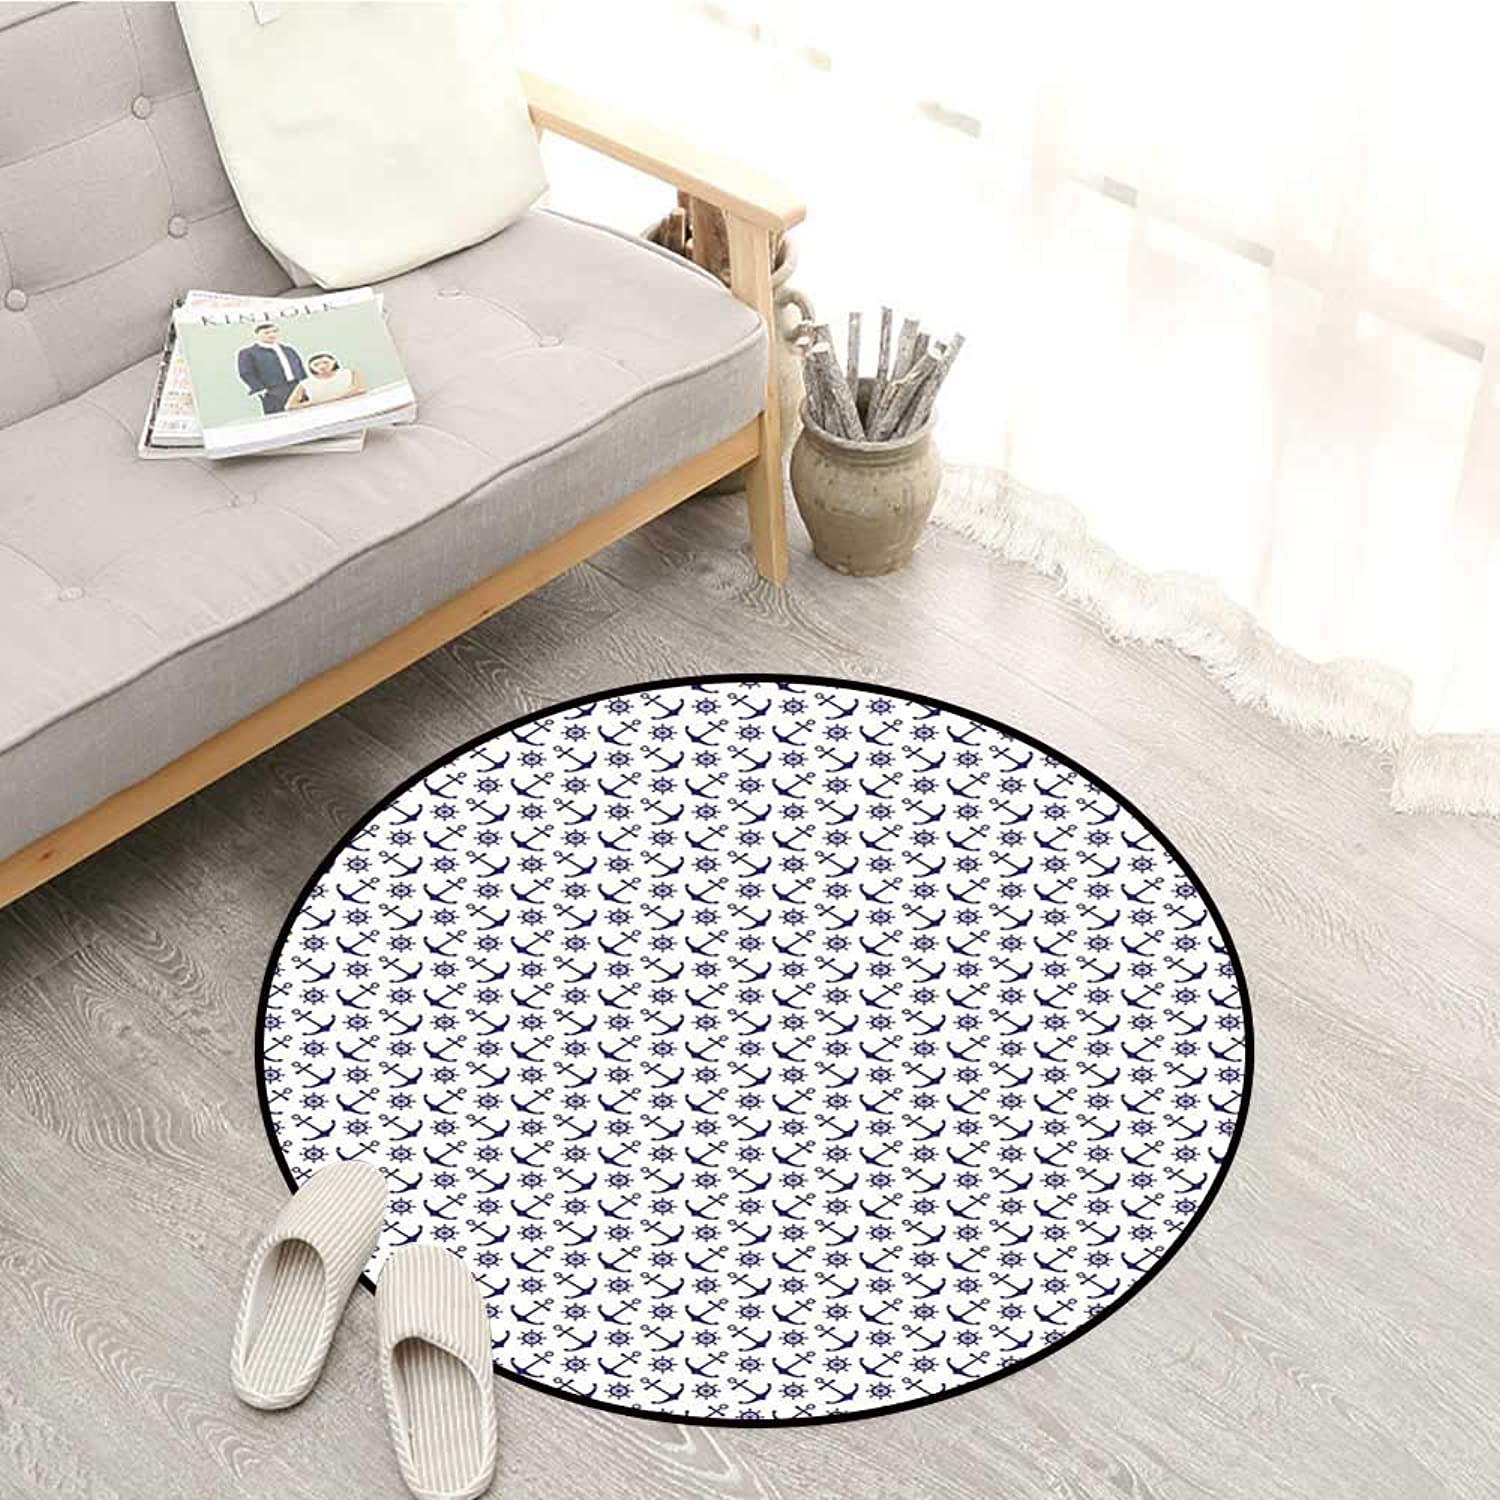 Navy bluee Non-Slip Rugs Anchors with Ships Steering Wheels Nautical Composition Sea Life Element Sofa Coffee Table Mat 4'3  Dark bluee White